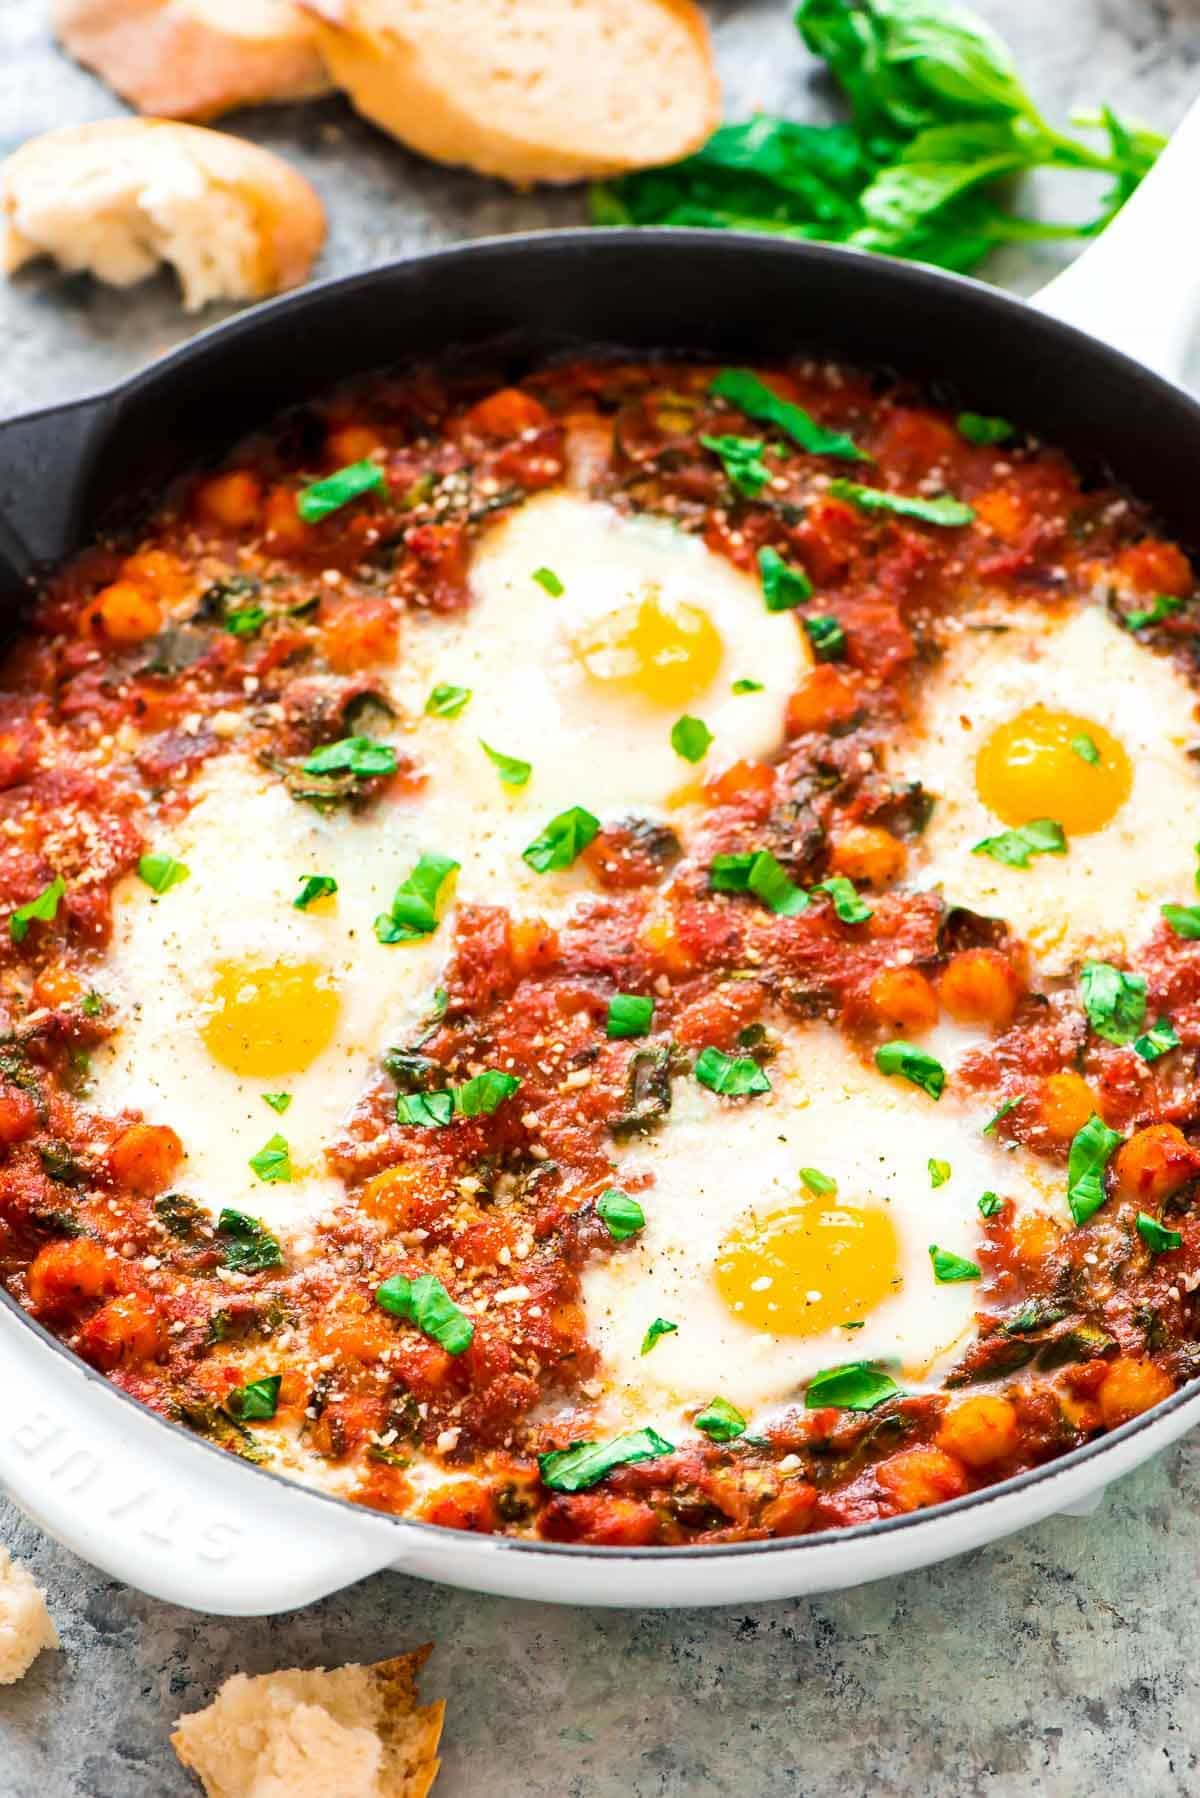 Eggs in Purgatory, Italian style – Easy, budget friendly, and filling! Eggs baked in a zesty tomato sauce with chickpeas, spinach, basil, and Parmesan. Recipe at wellplated.com | @wellplated